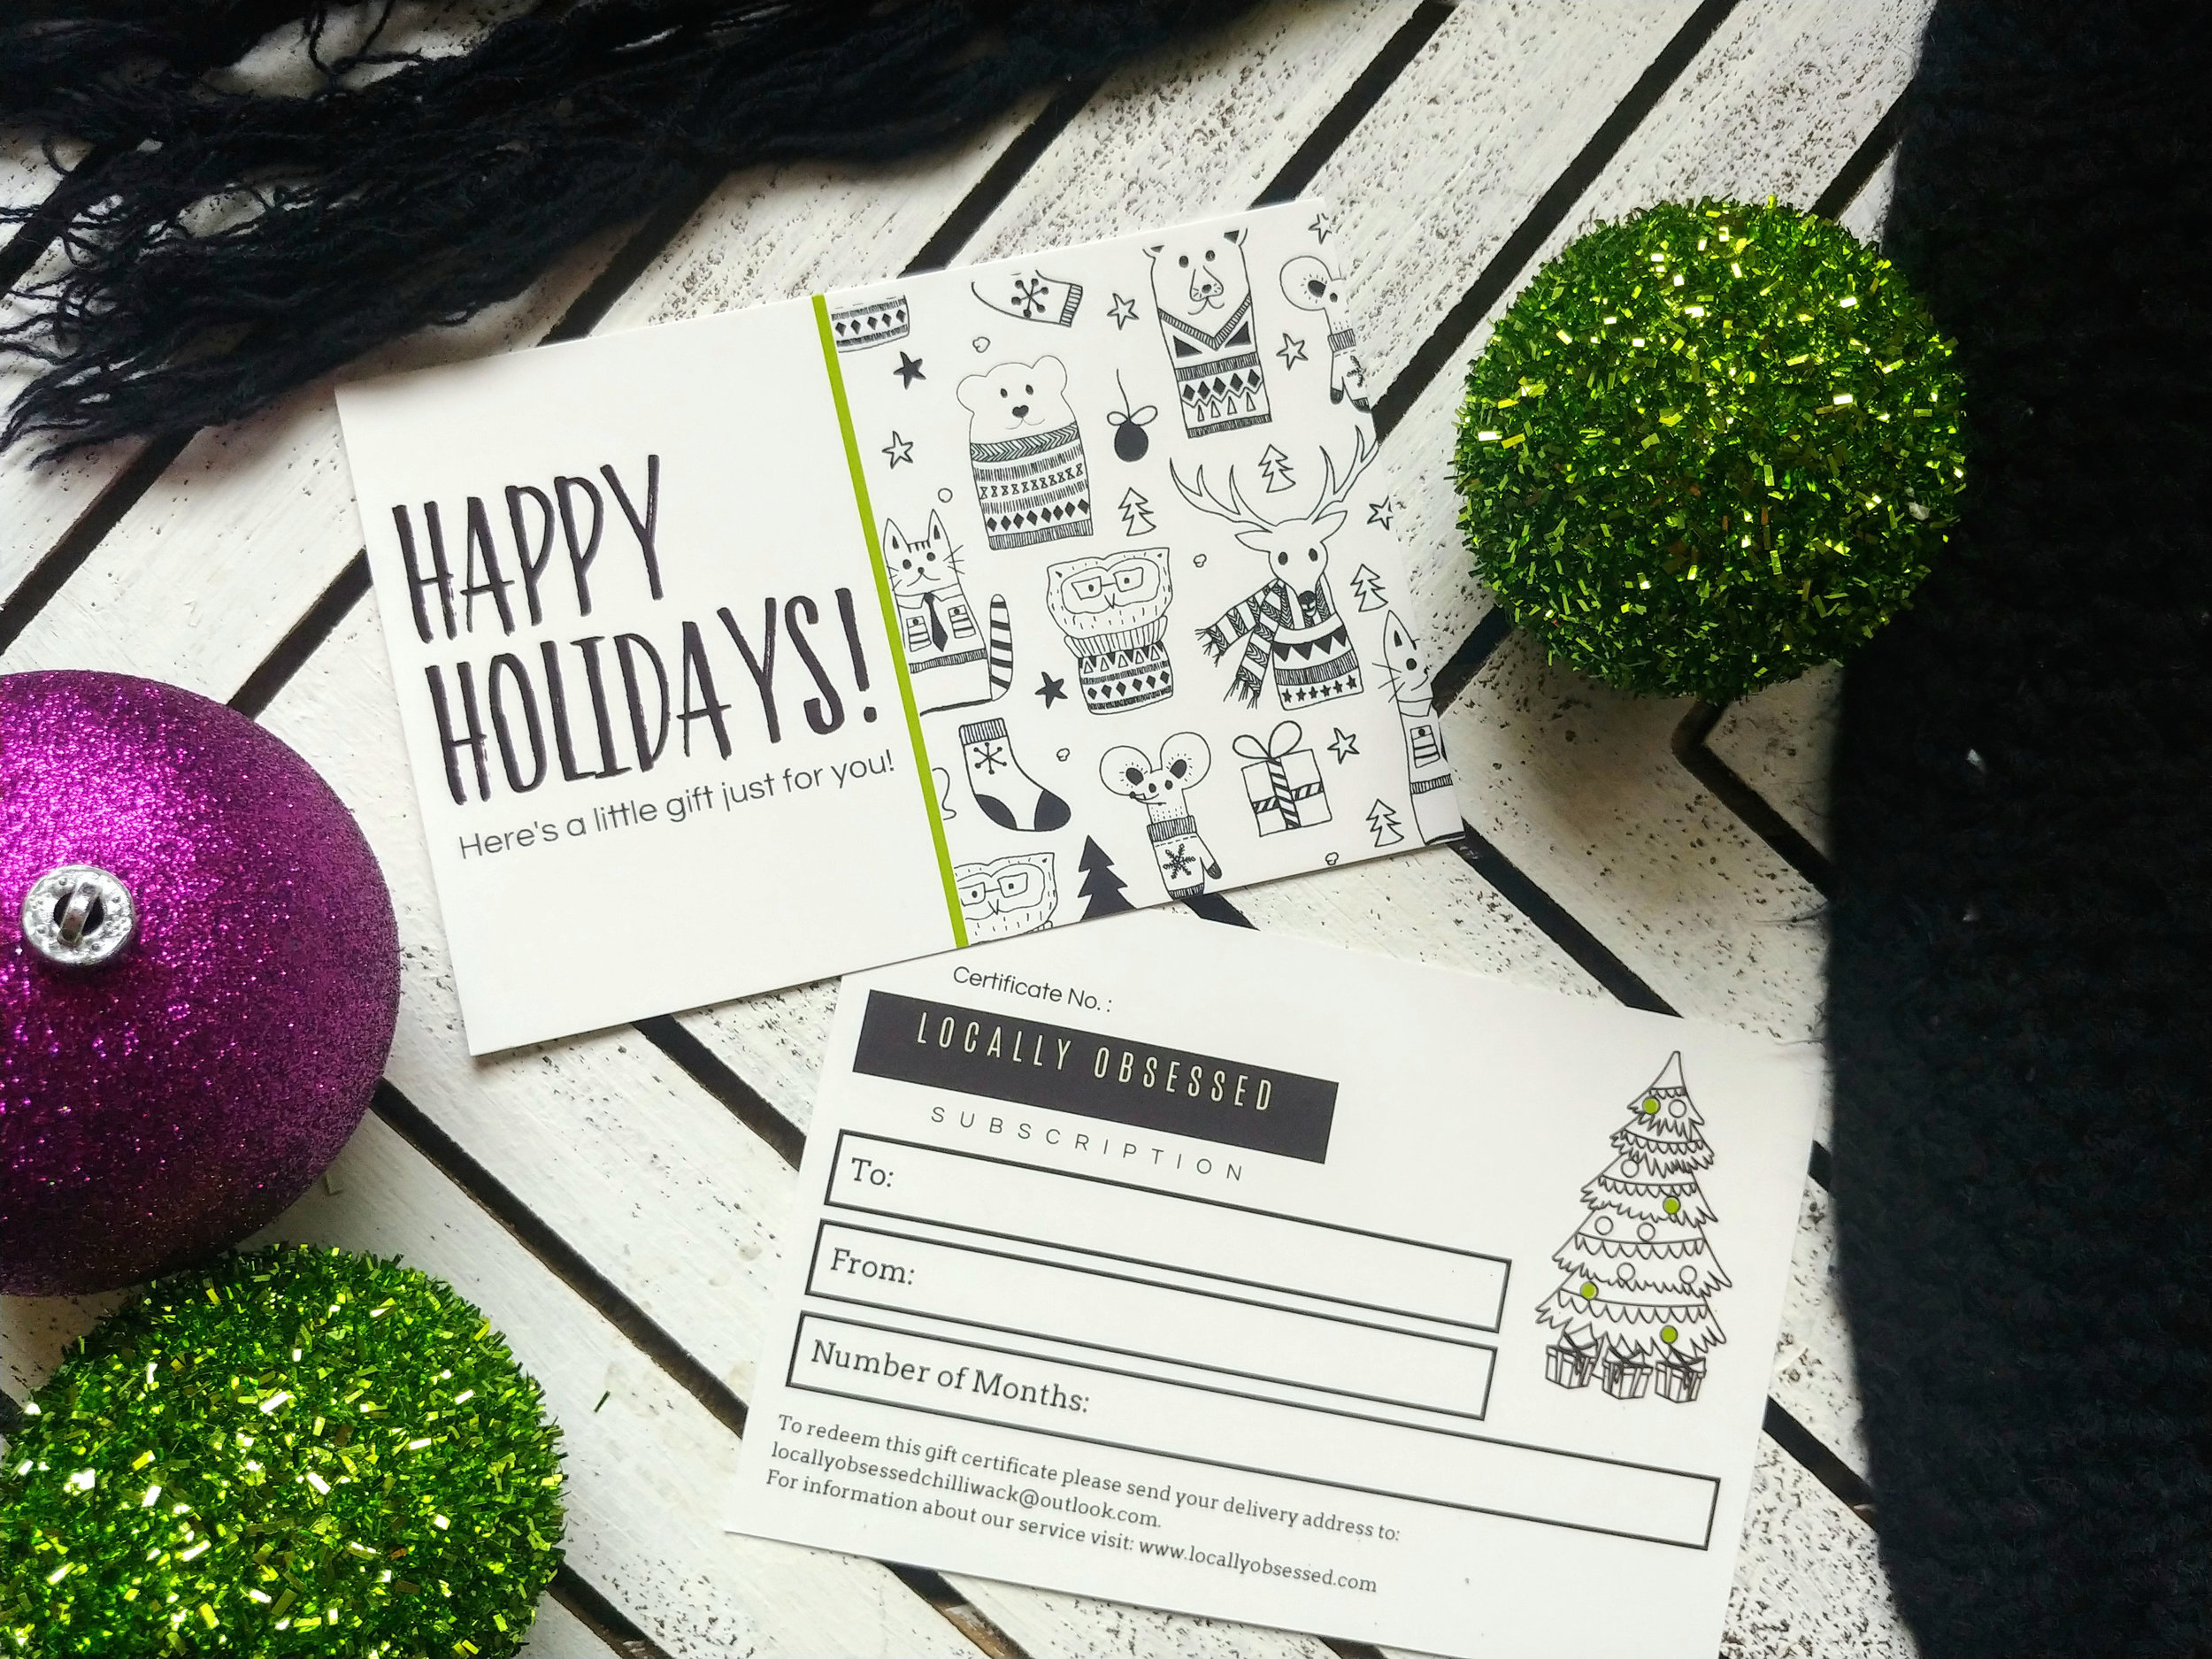 Locally Obsessed Gift Certificate